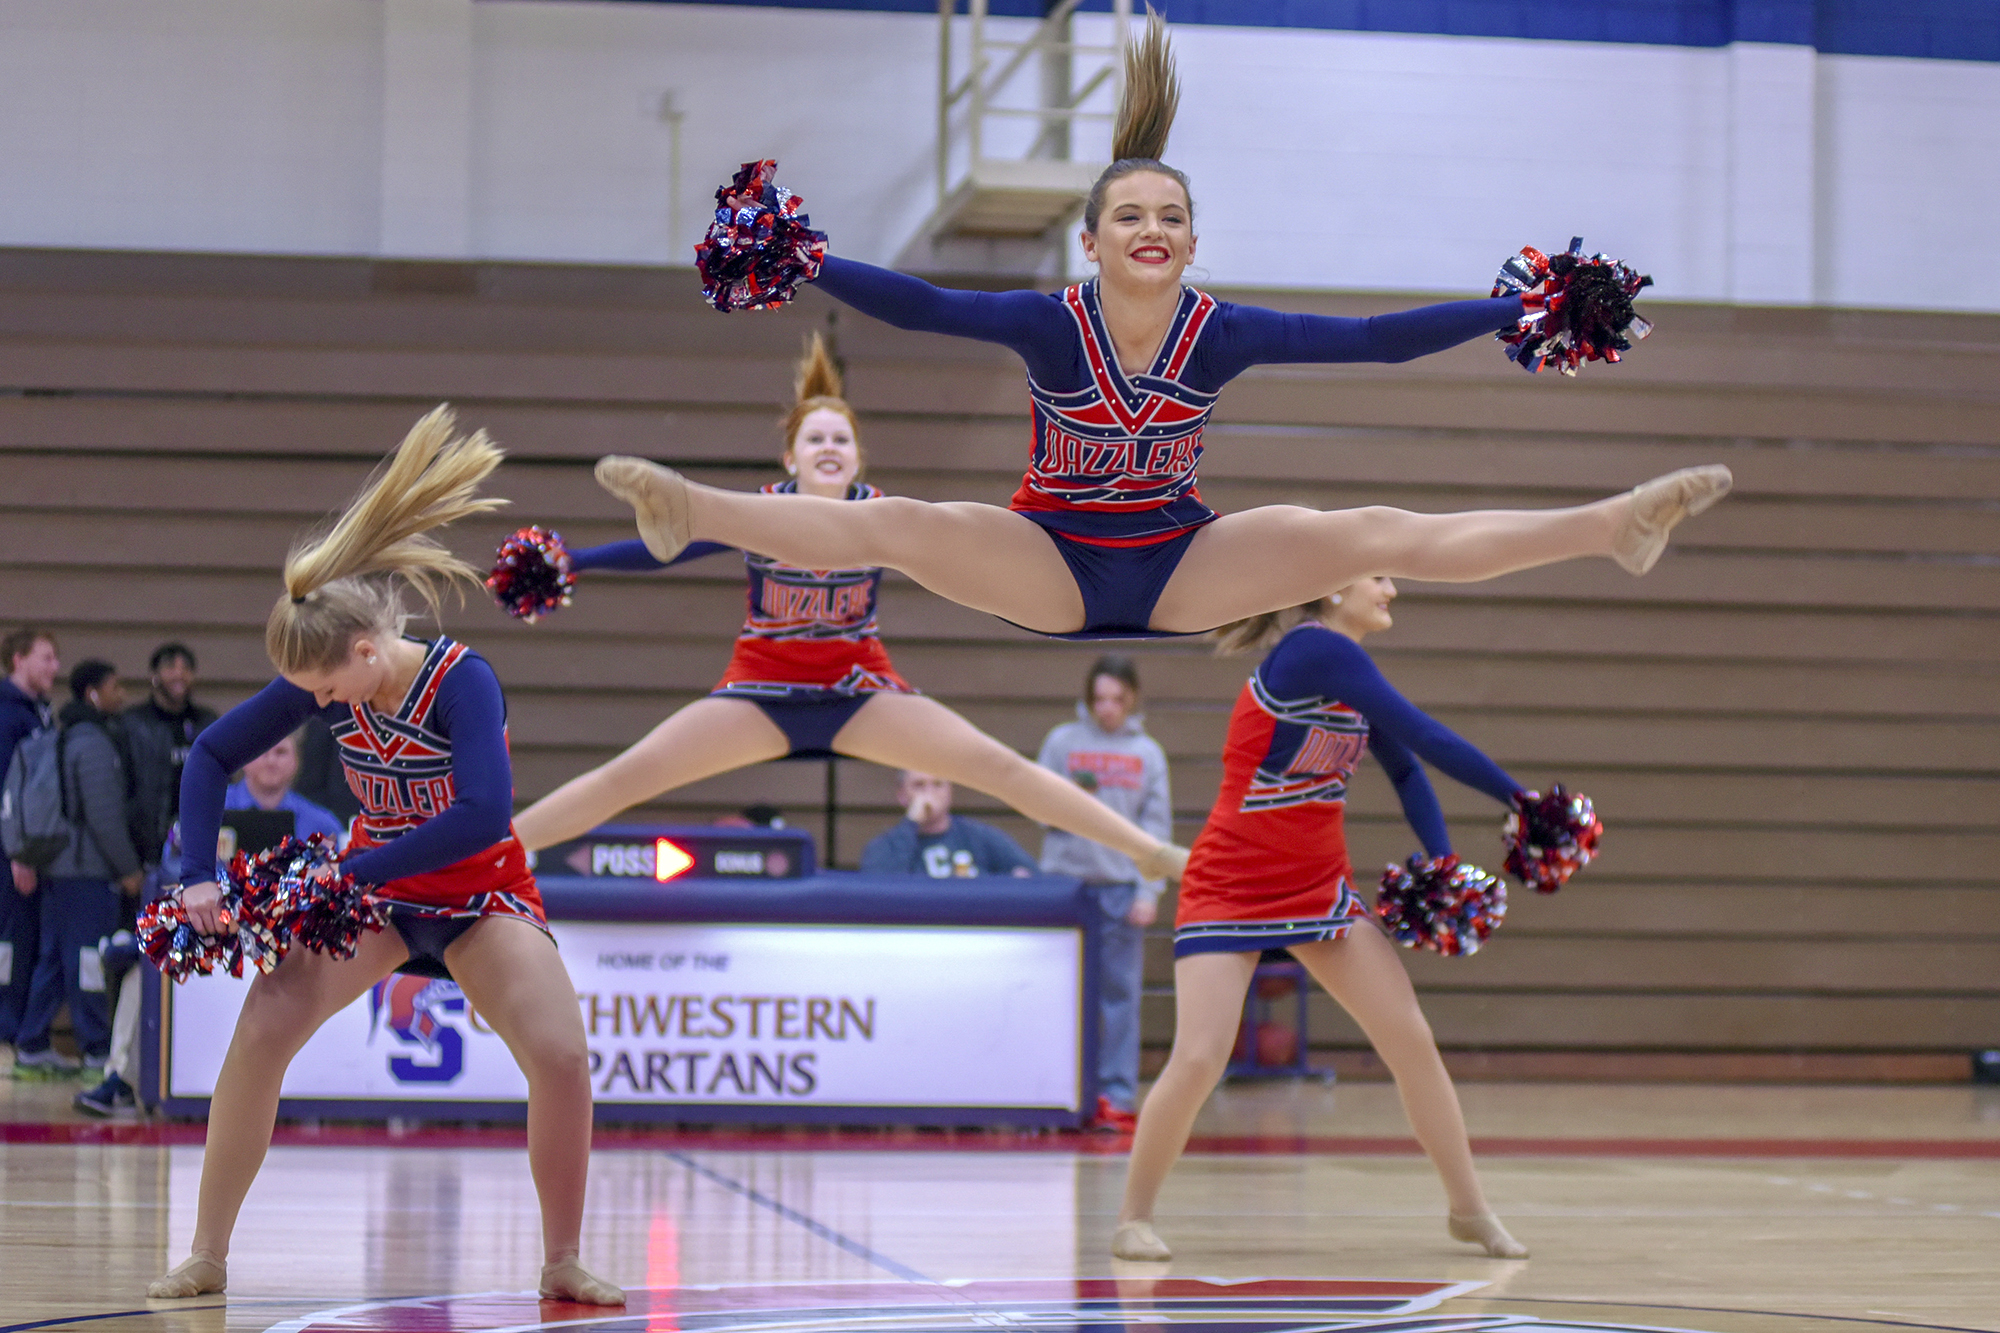 Kiersten Latham leaps into the air during a dance routine at Southwestern Community College in Creston, Iowa. Kiersten